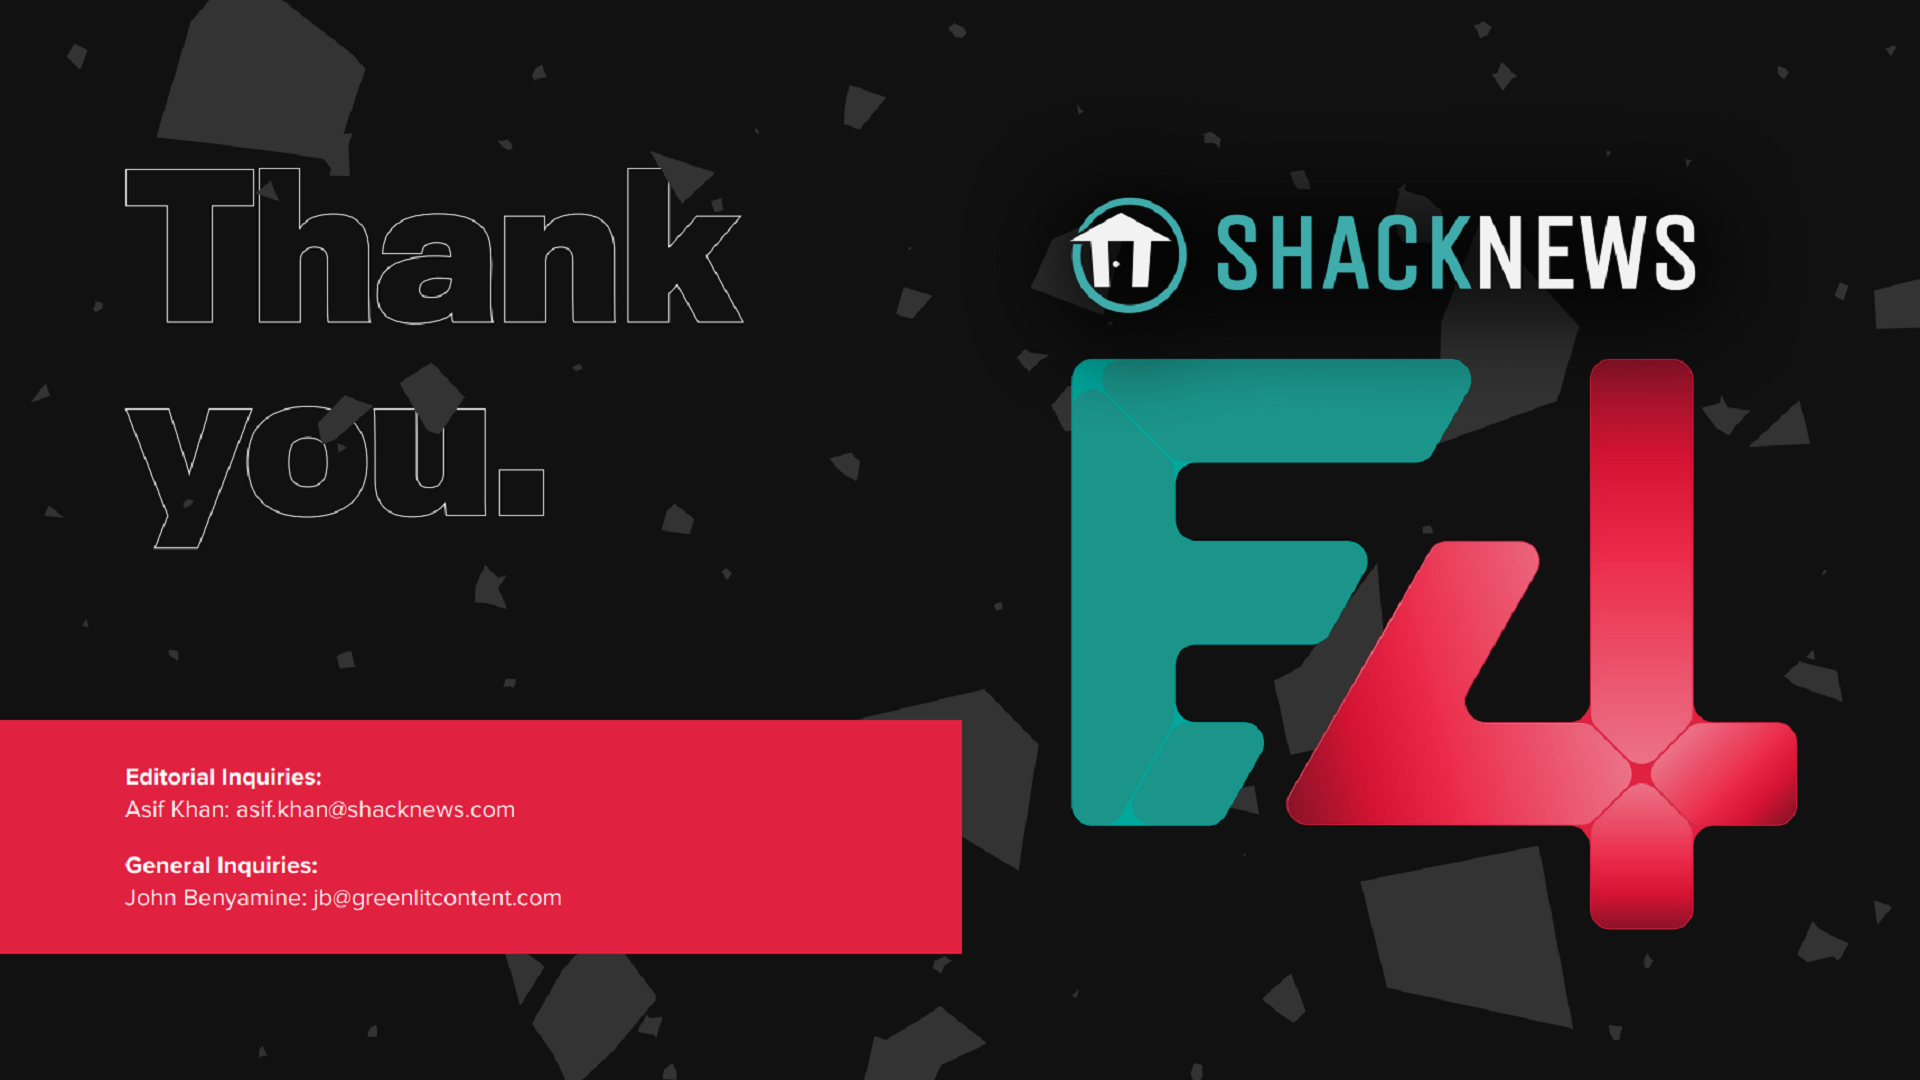 Contact us today if you want to join Shacknews this Summer to celebrate video games!